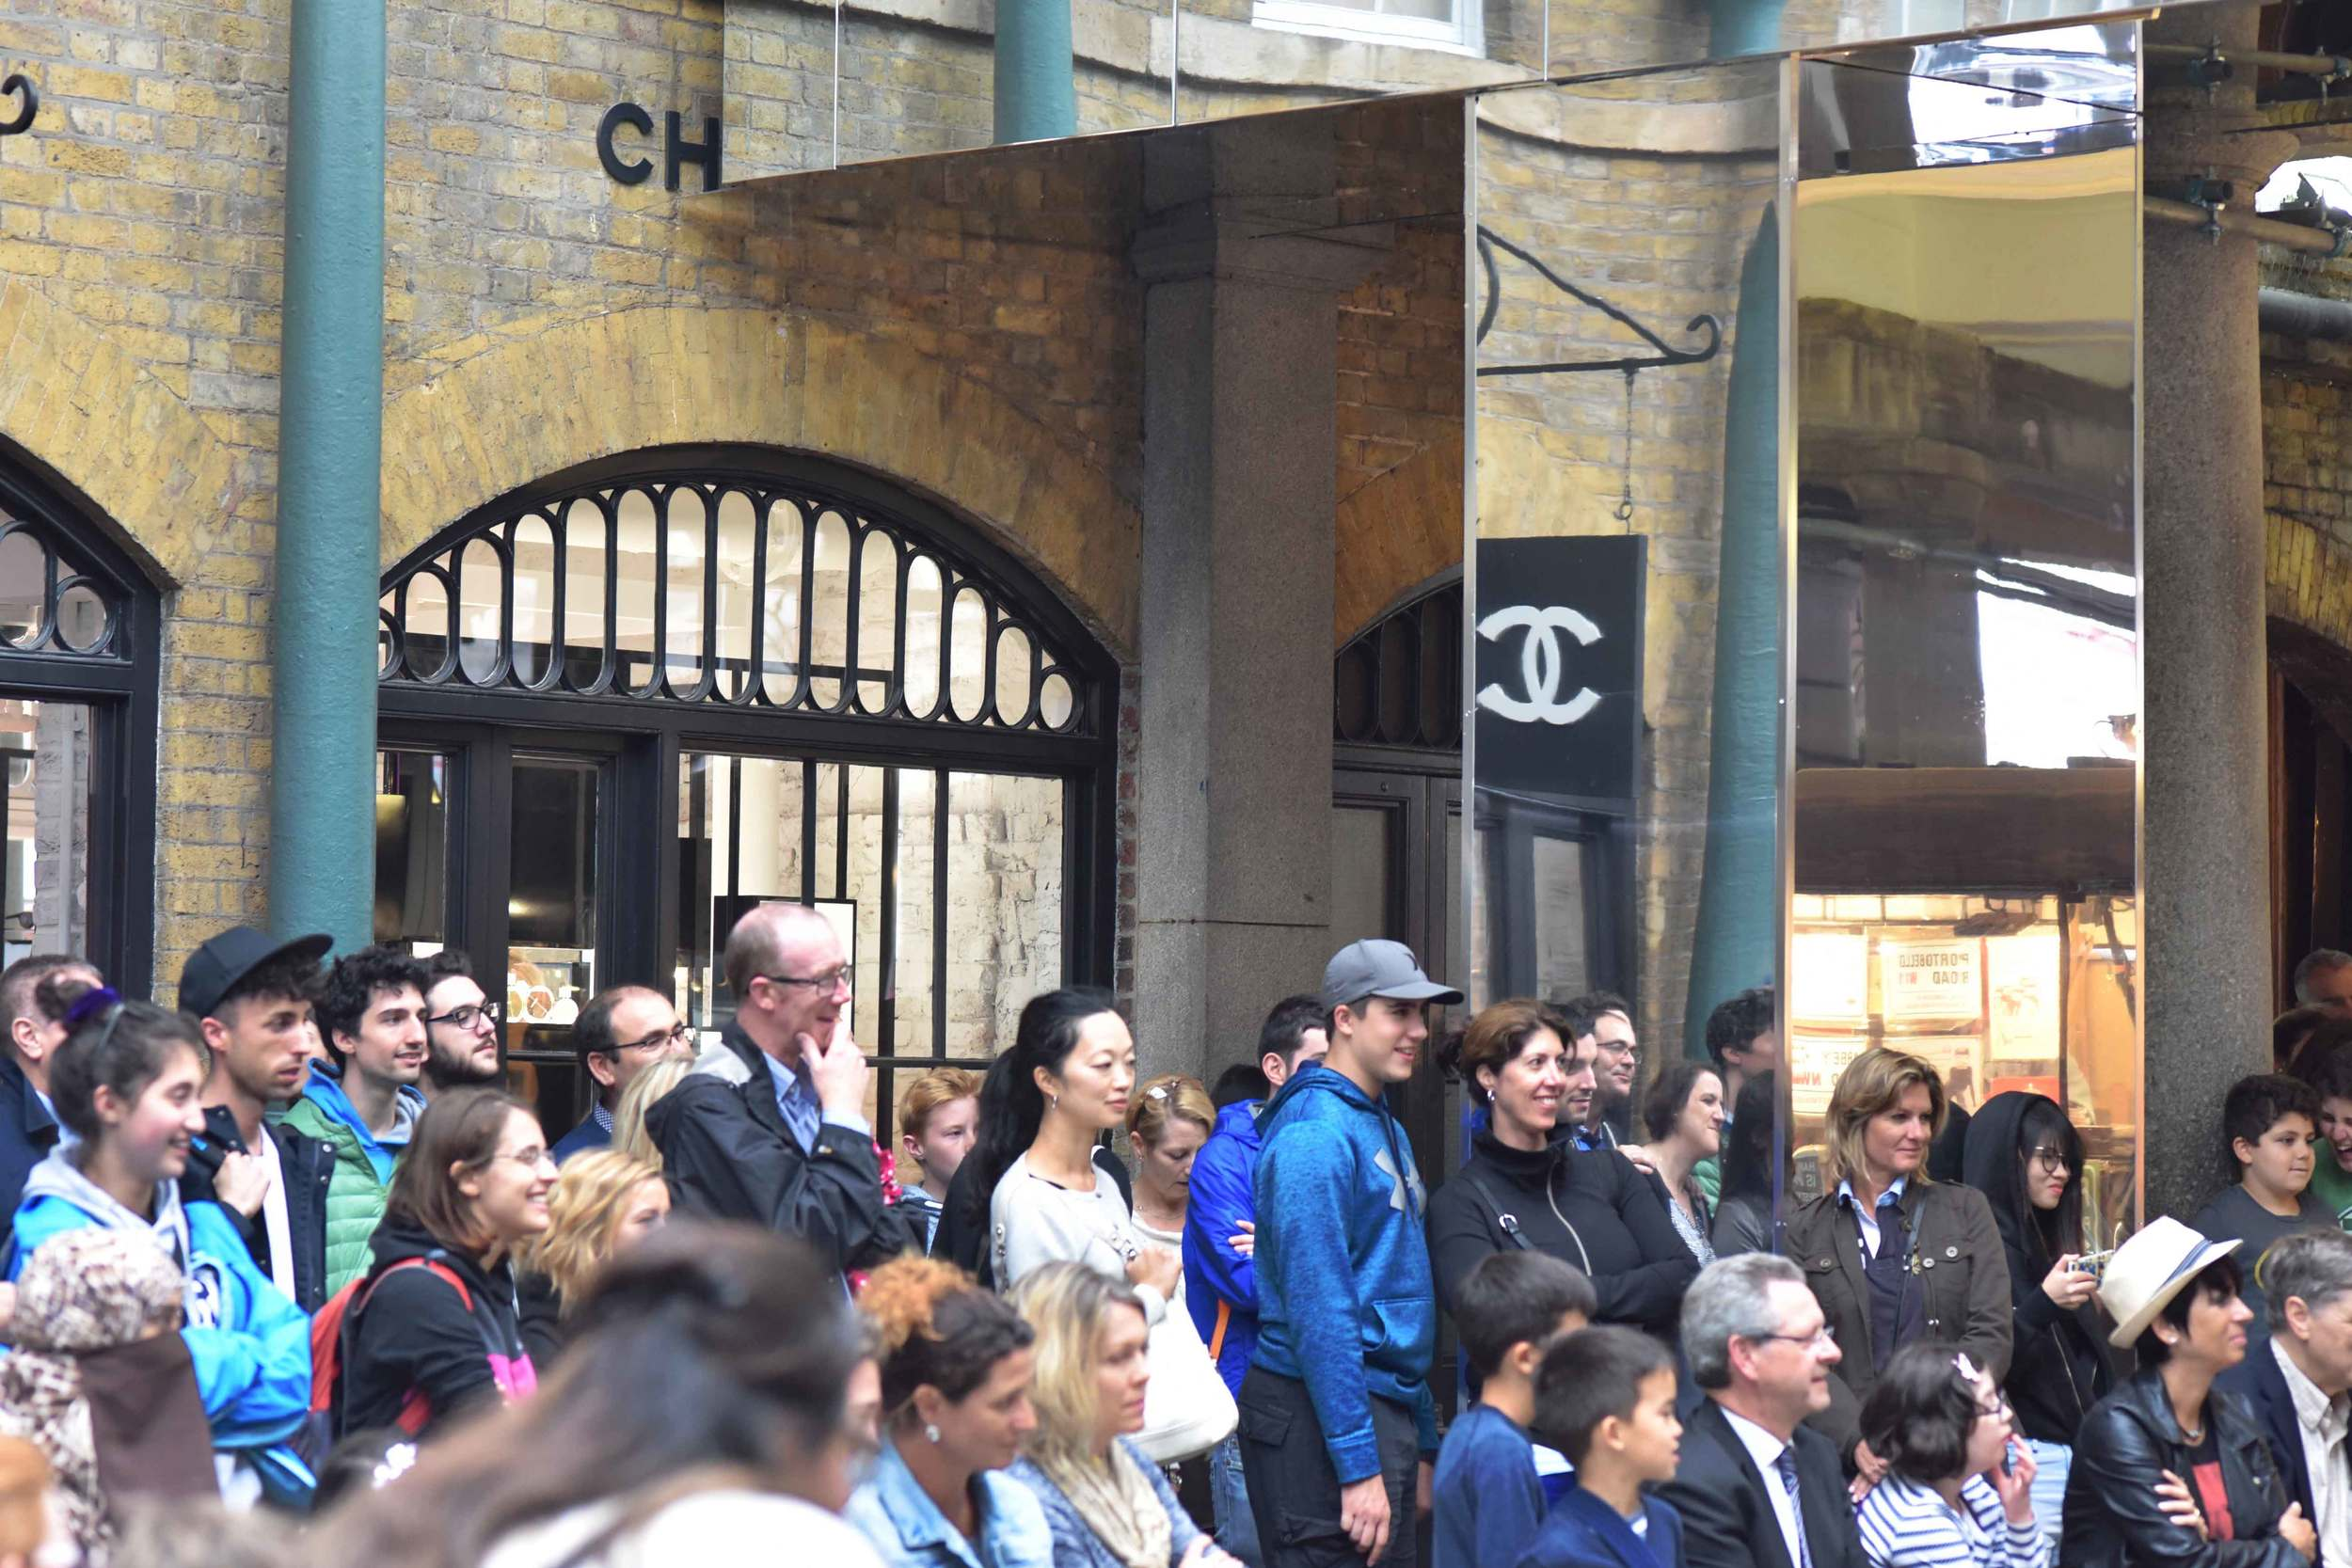 Crowd watching an artist perform at Apple Market, Covent Garden, London, UK. Image©sourcingstyle.com